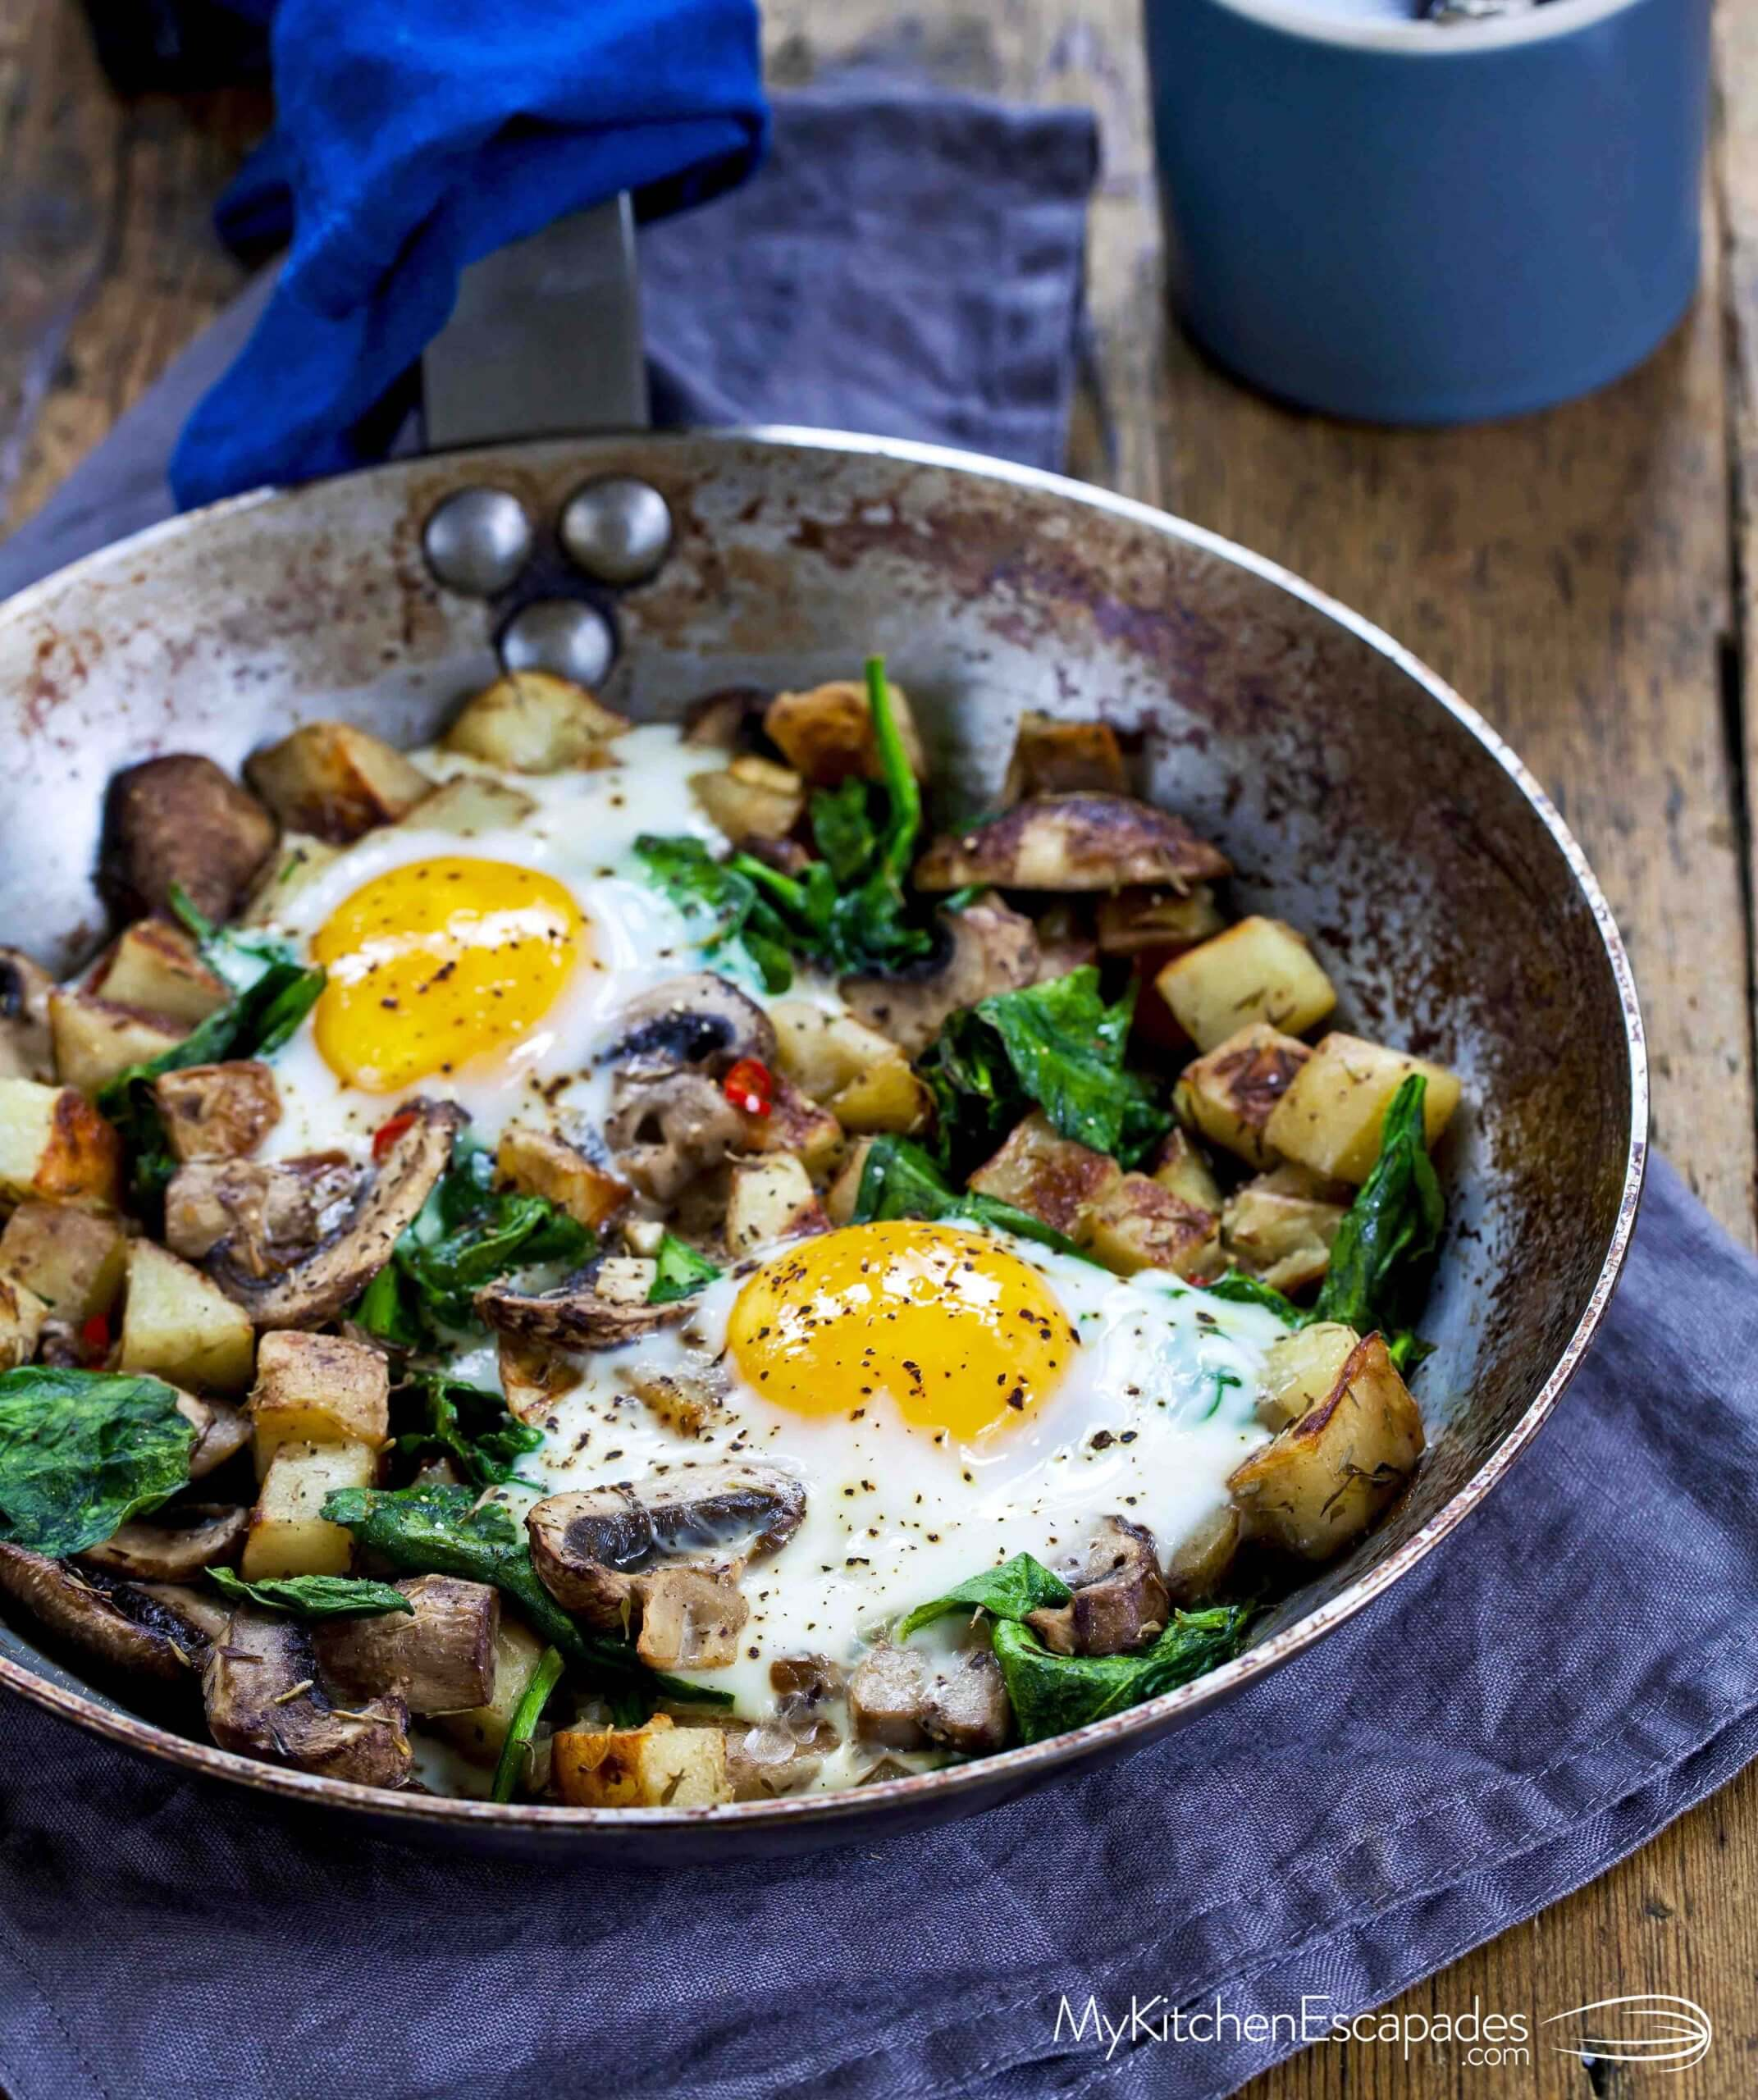 Breakfast skillet with eggs and potatoes